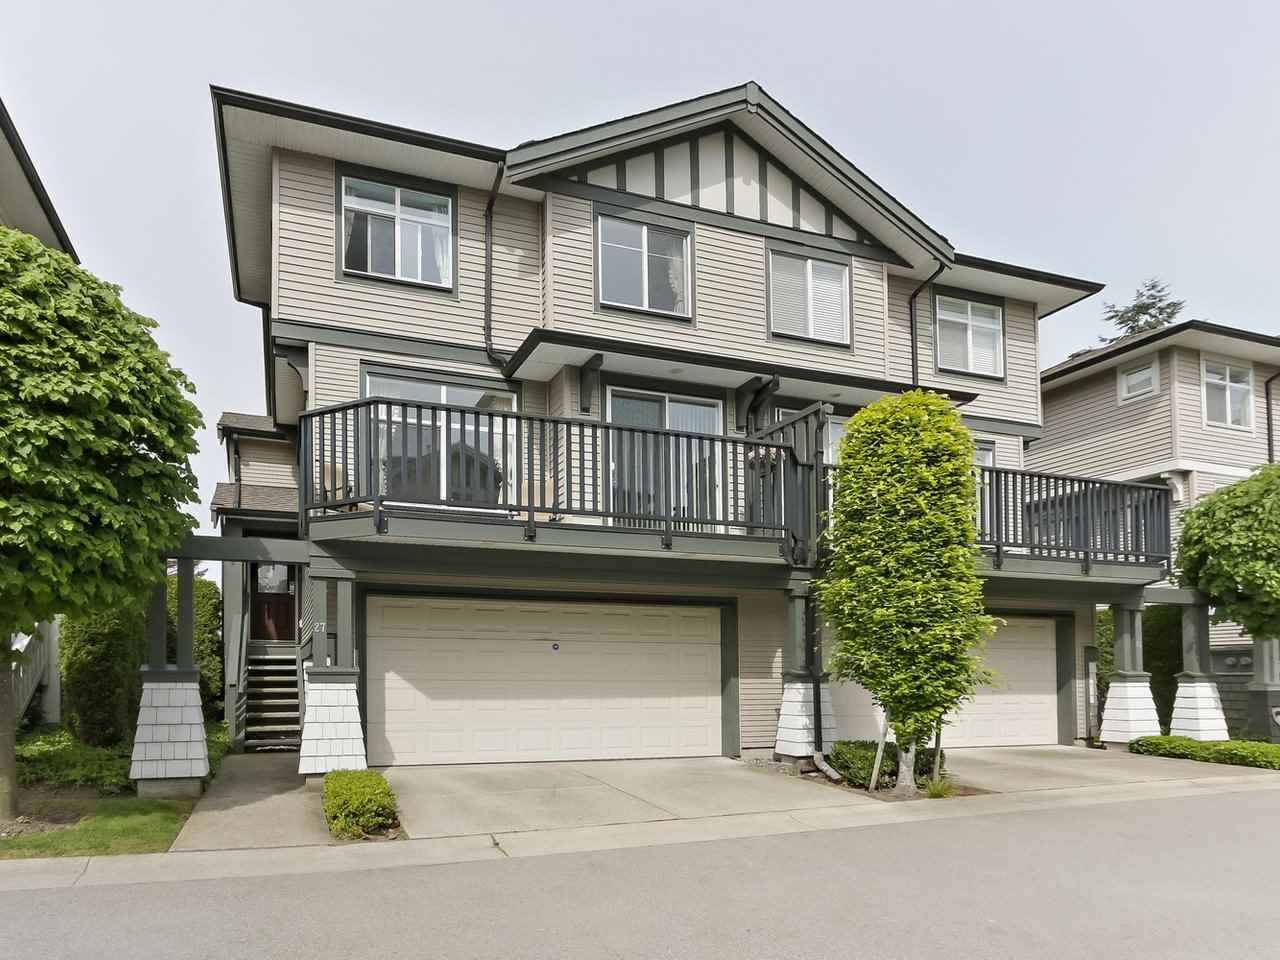 Main Photo: 27 9833 KEEFER AVENUE in : McLennan North Townhouse for sale : MLS®# R2368445